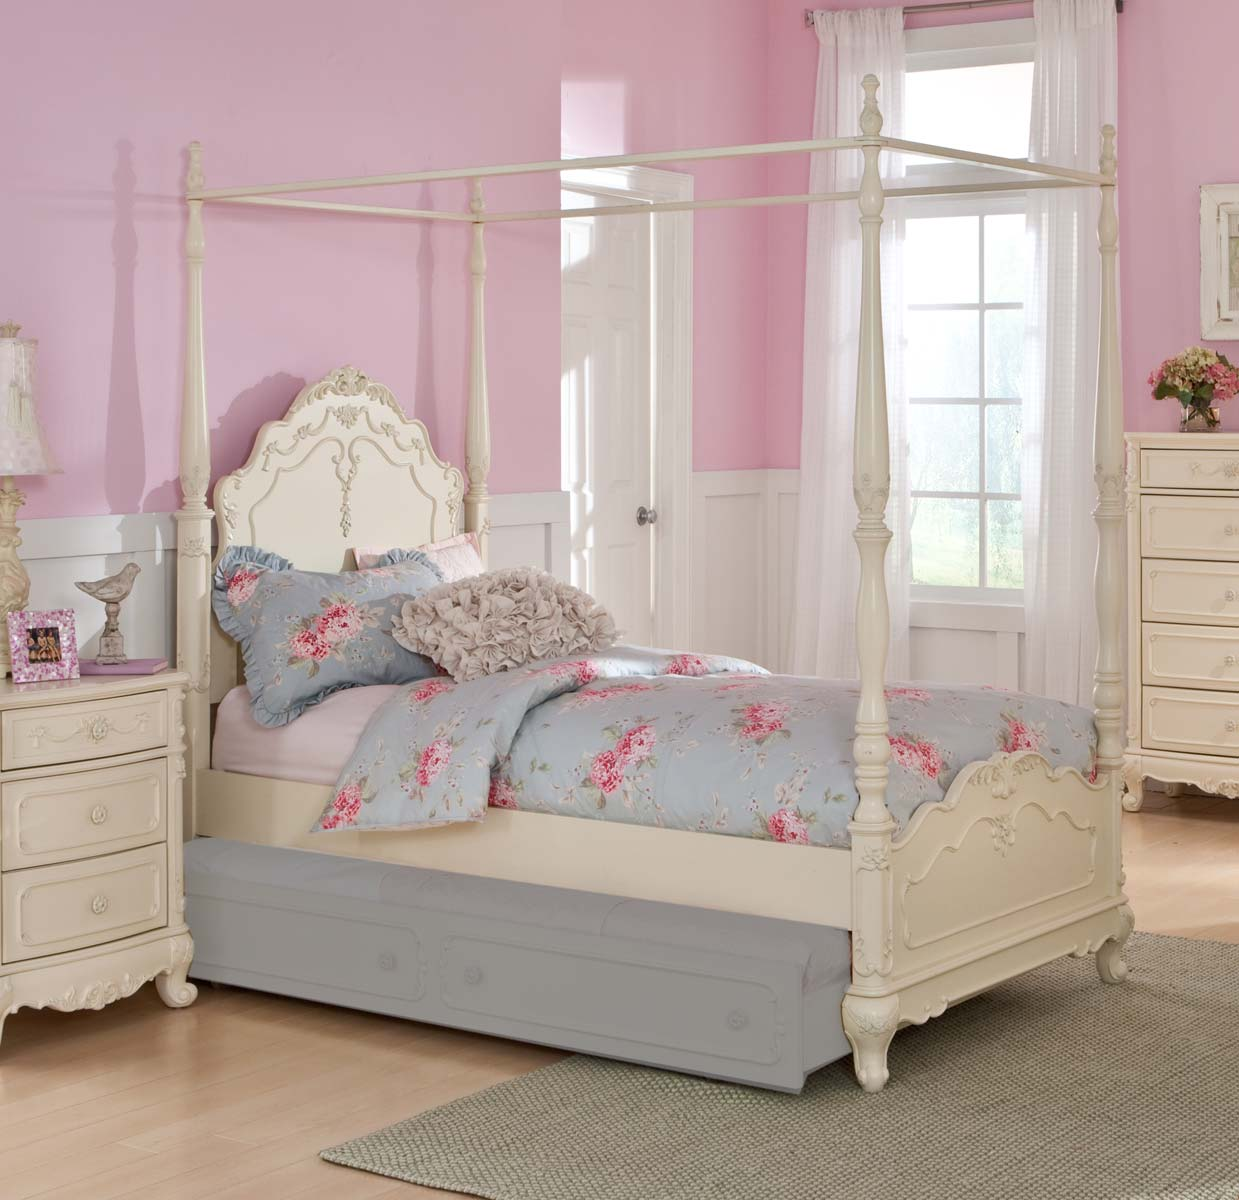 Homelegance Cinderella Bedroom Collection - Ecru B1386 ...